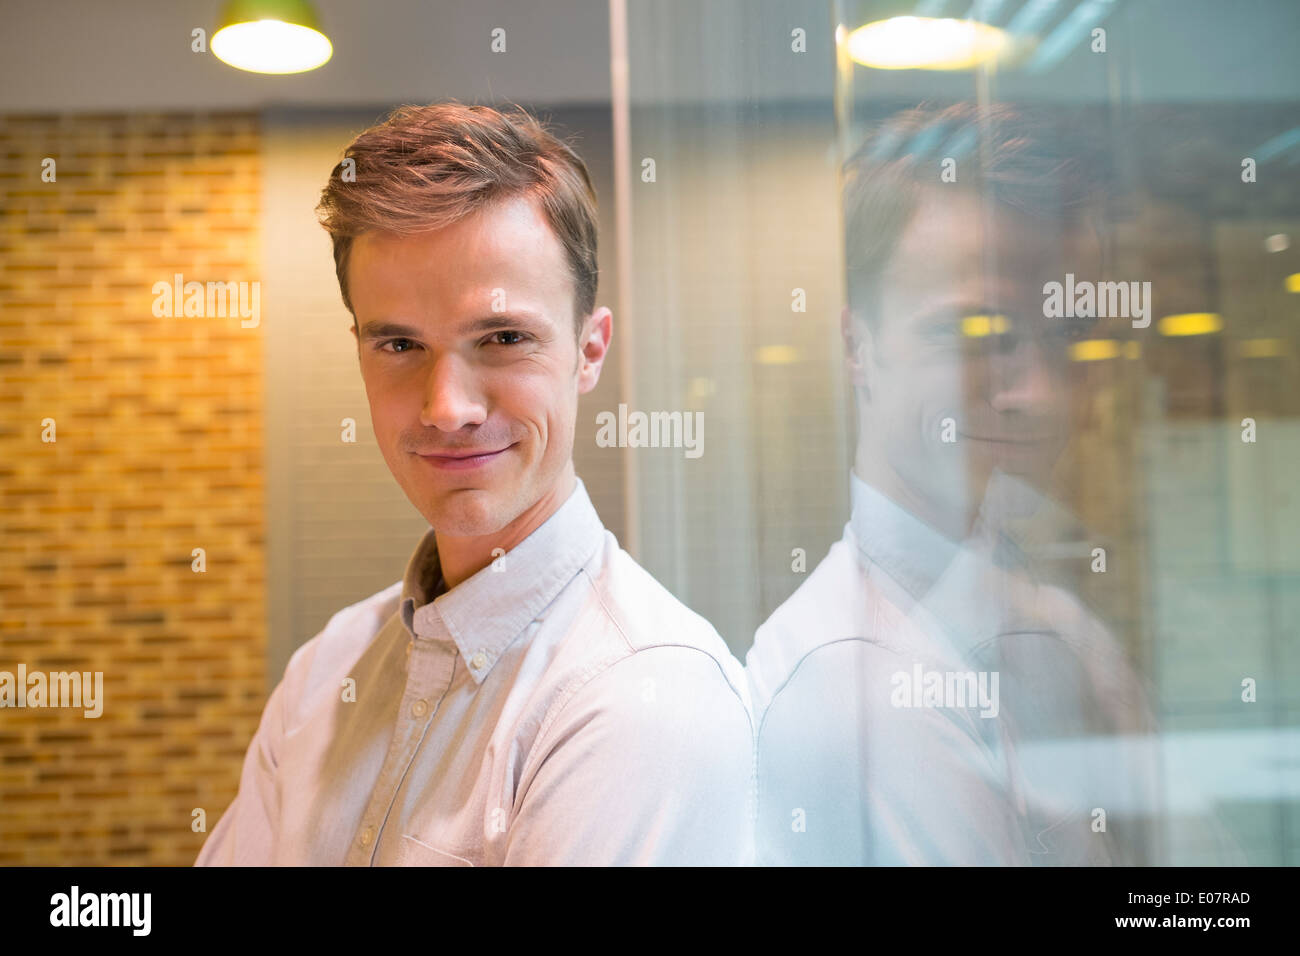 Male business startup looking camera student Stock Photo